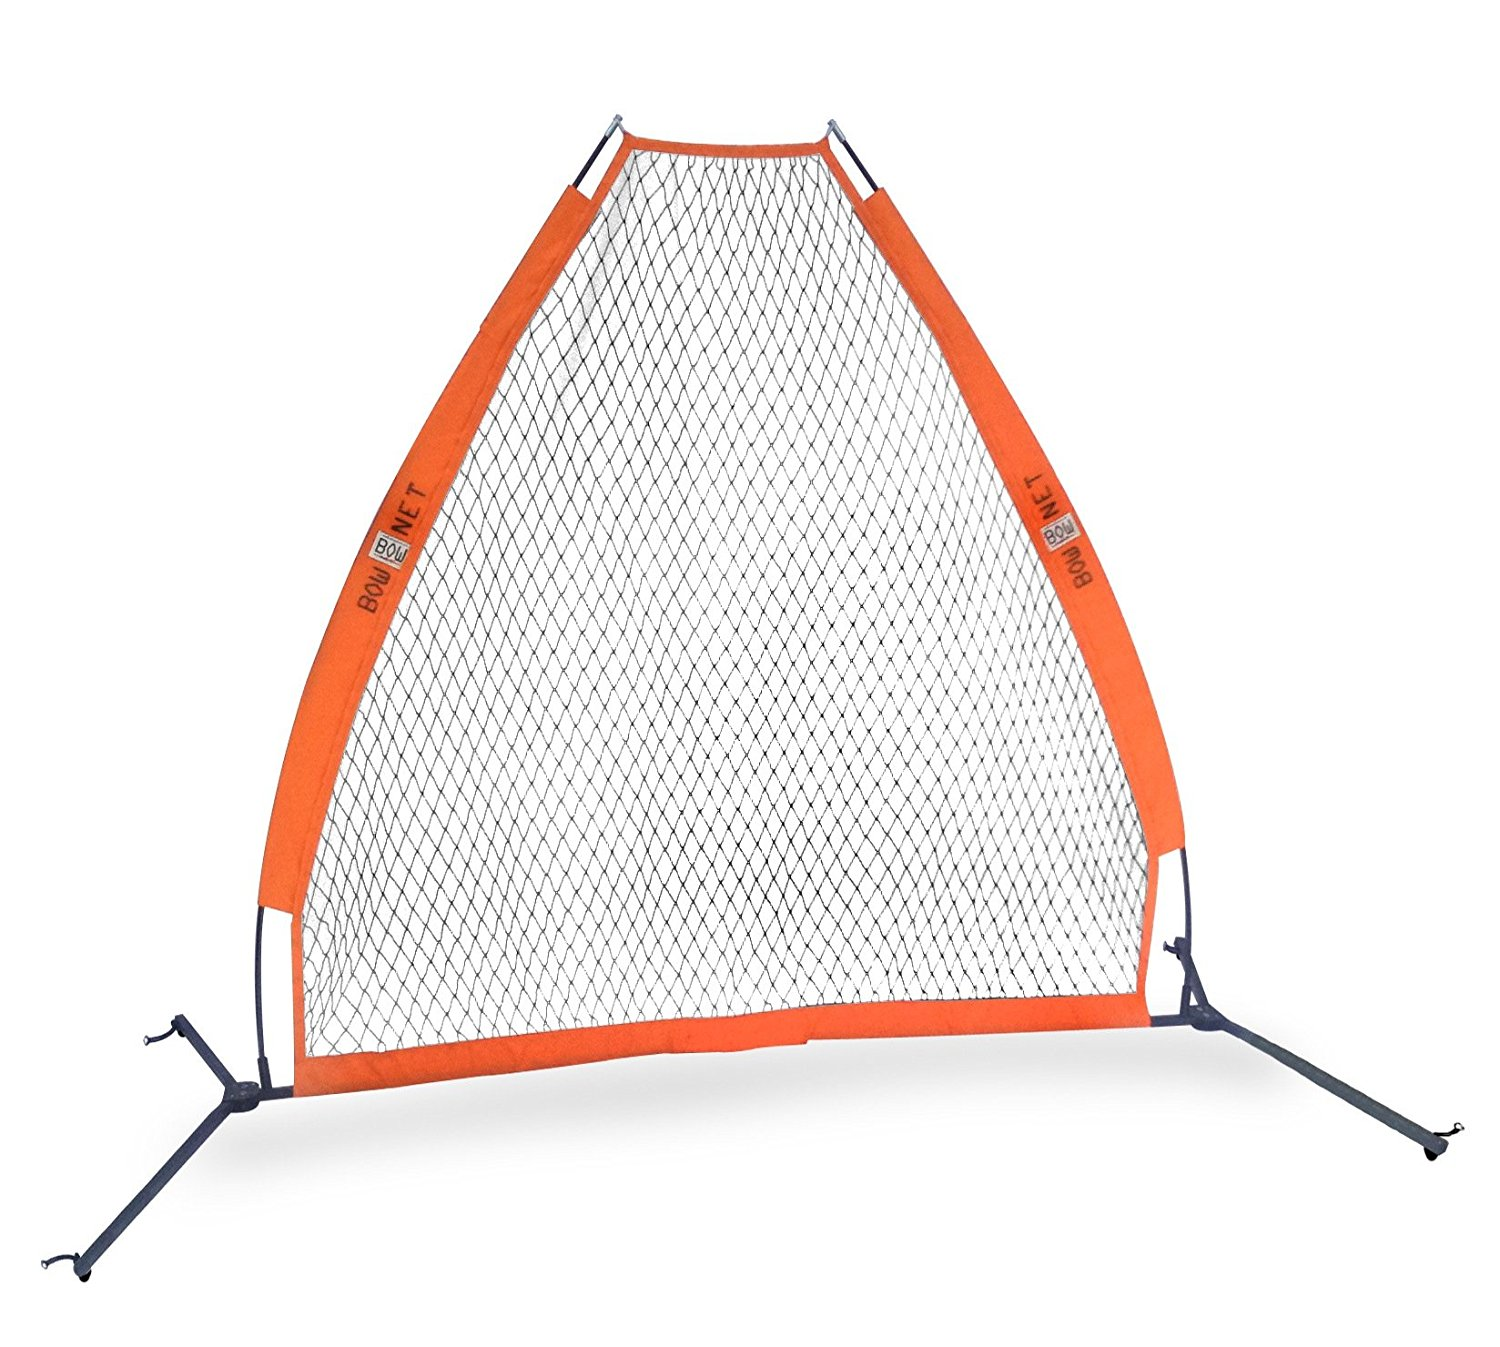 6d4a51f540a Get Quotations · Bow Net Portable Pitching Screen (7 x 7 feet) (7x7 Bundle)